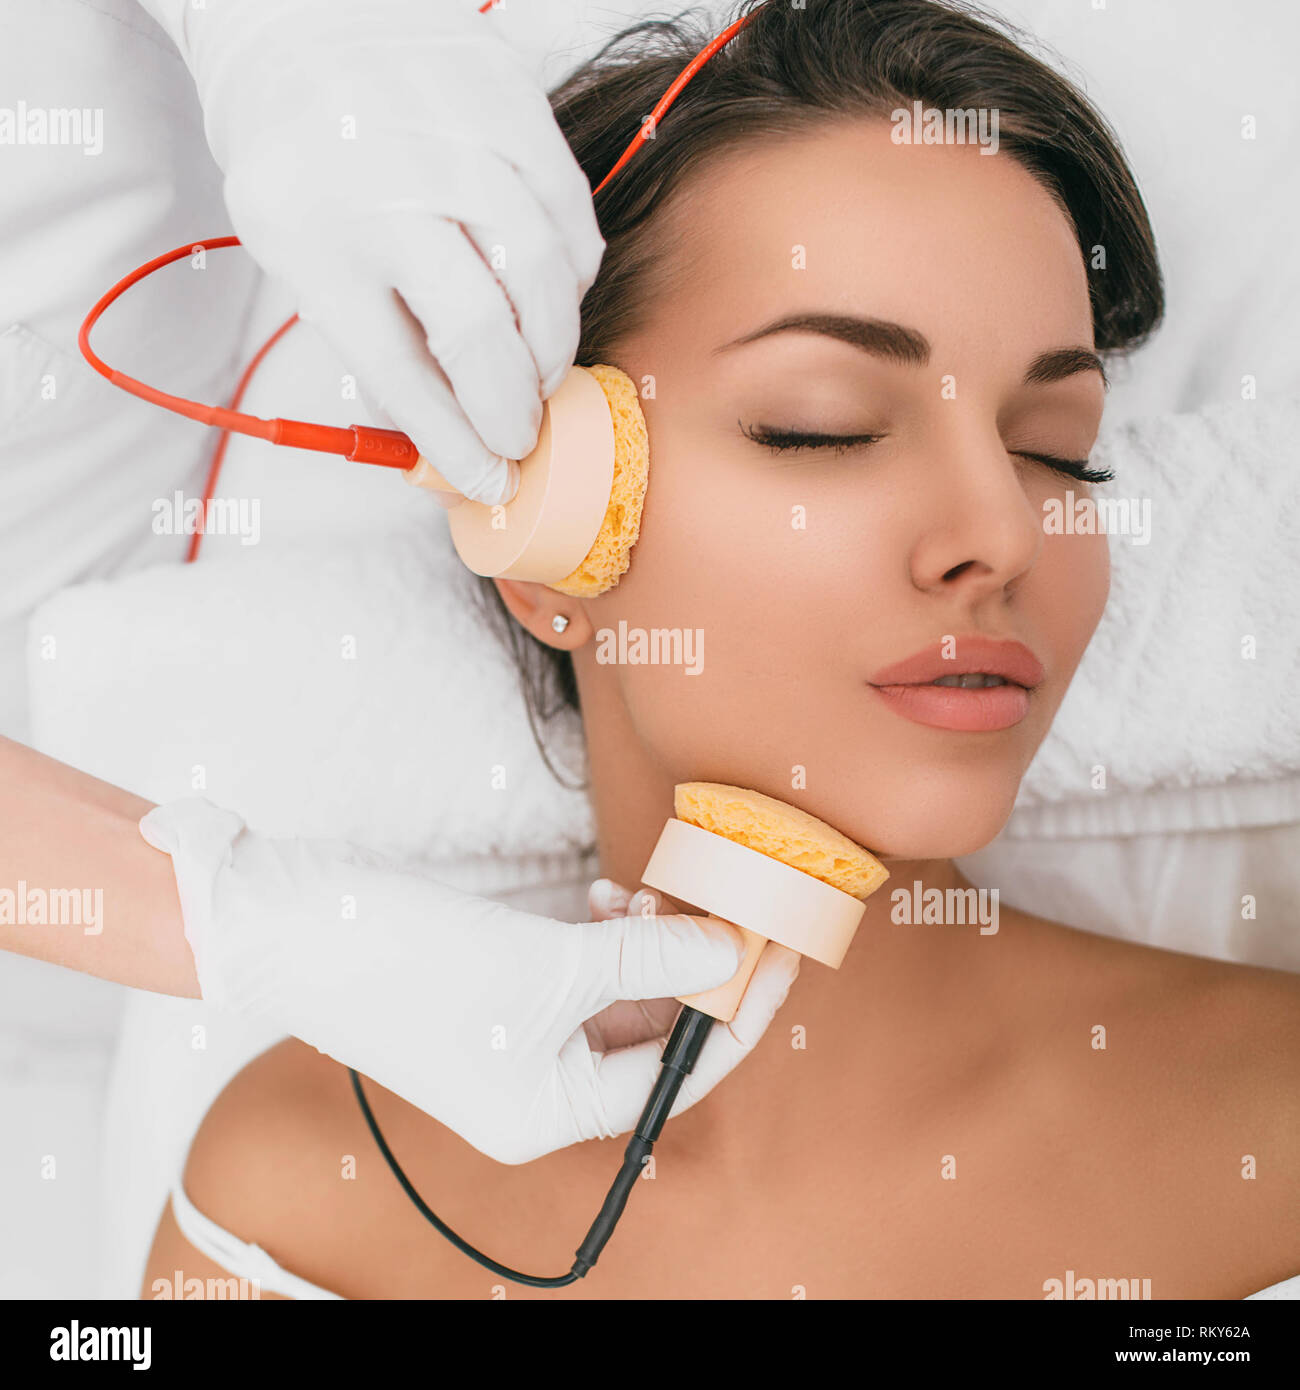 Beautiful woman receiving body microcurrent procedure for facelift Stock Photo